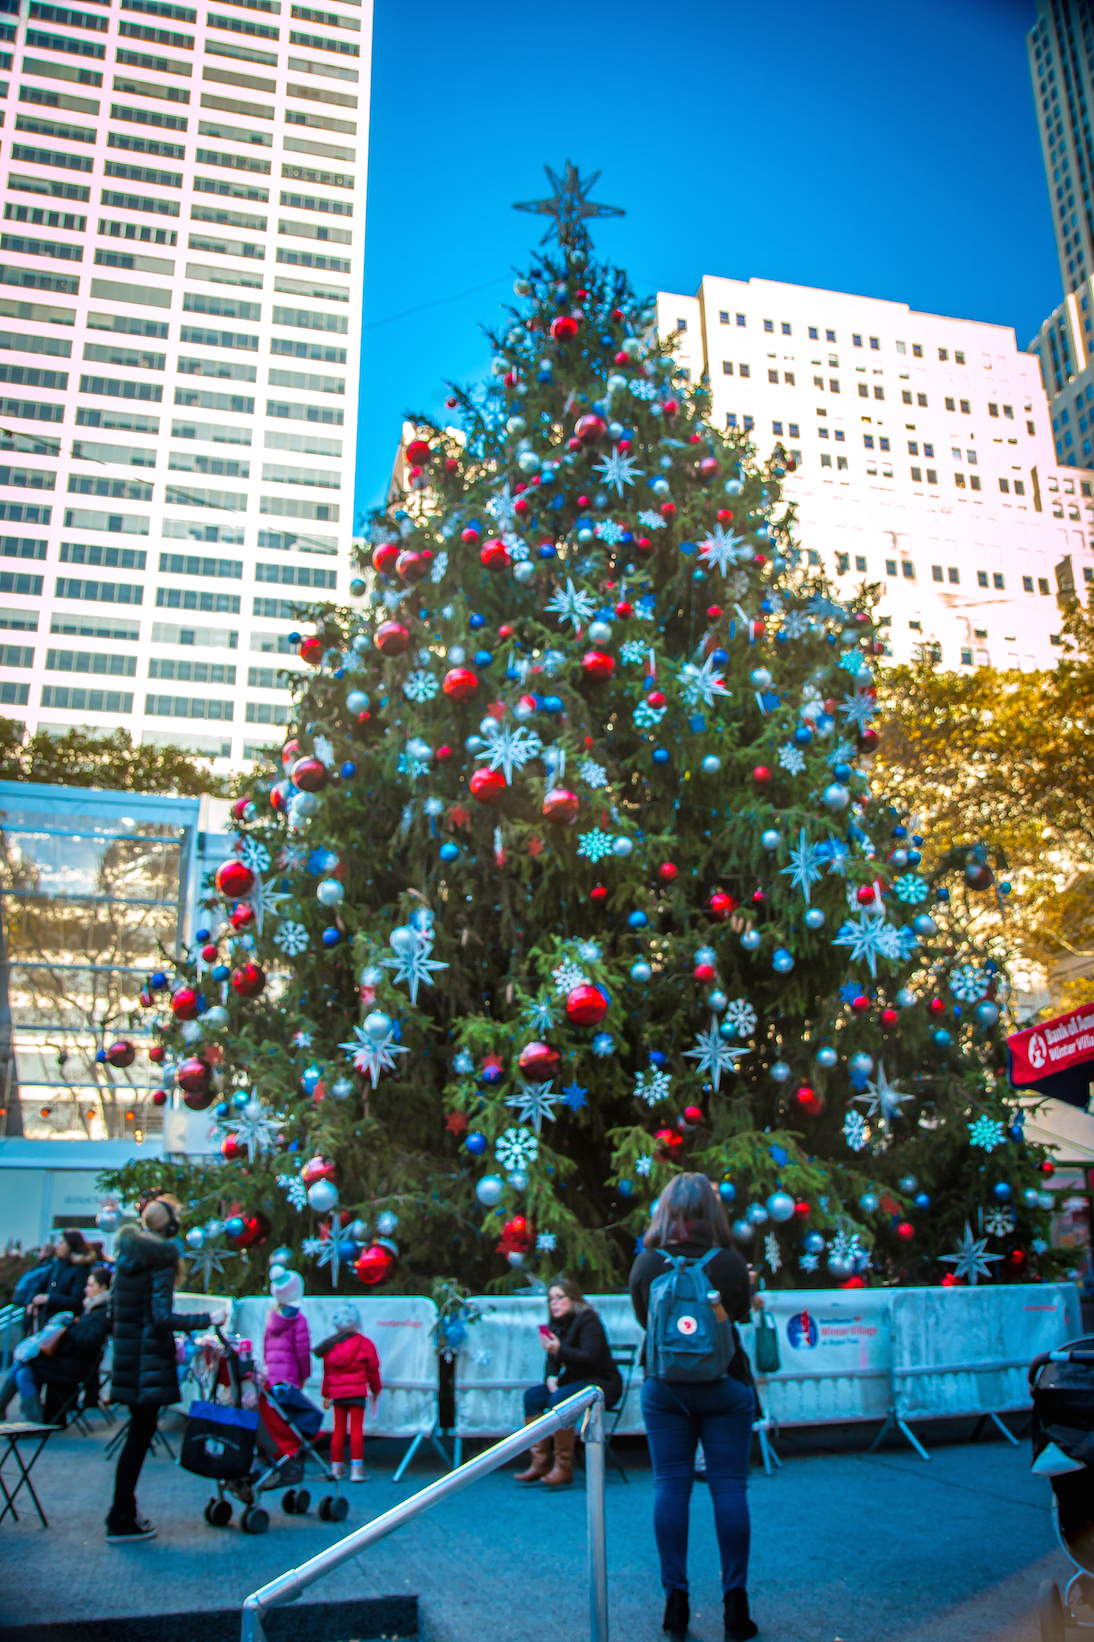 NYC Christmas: Free Walking Tour (Bryant Park)